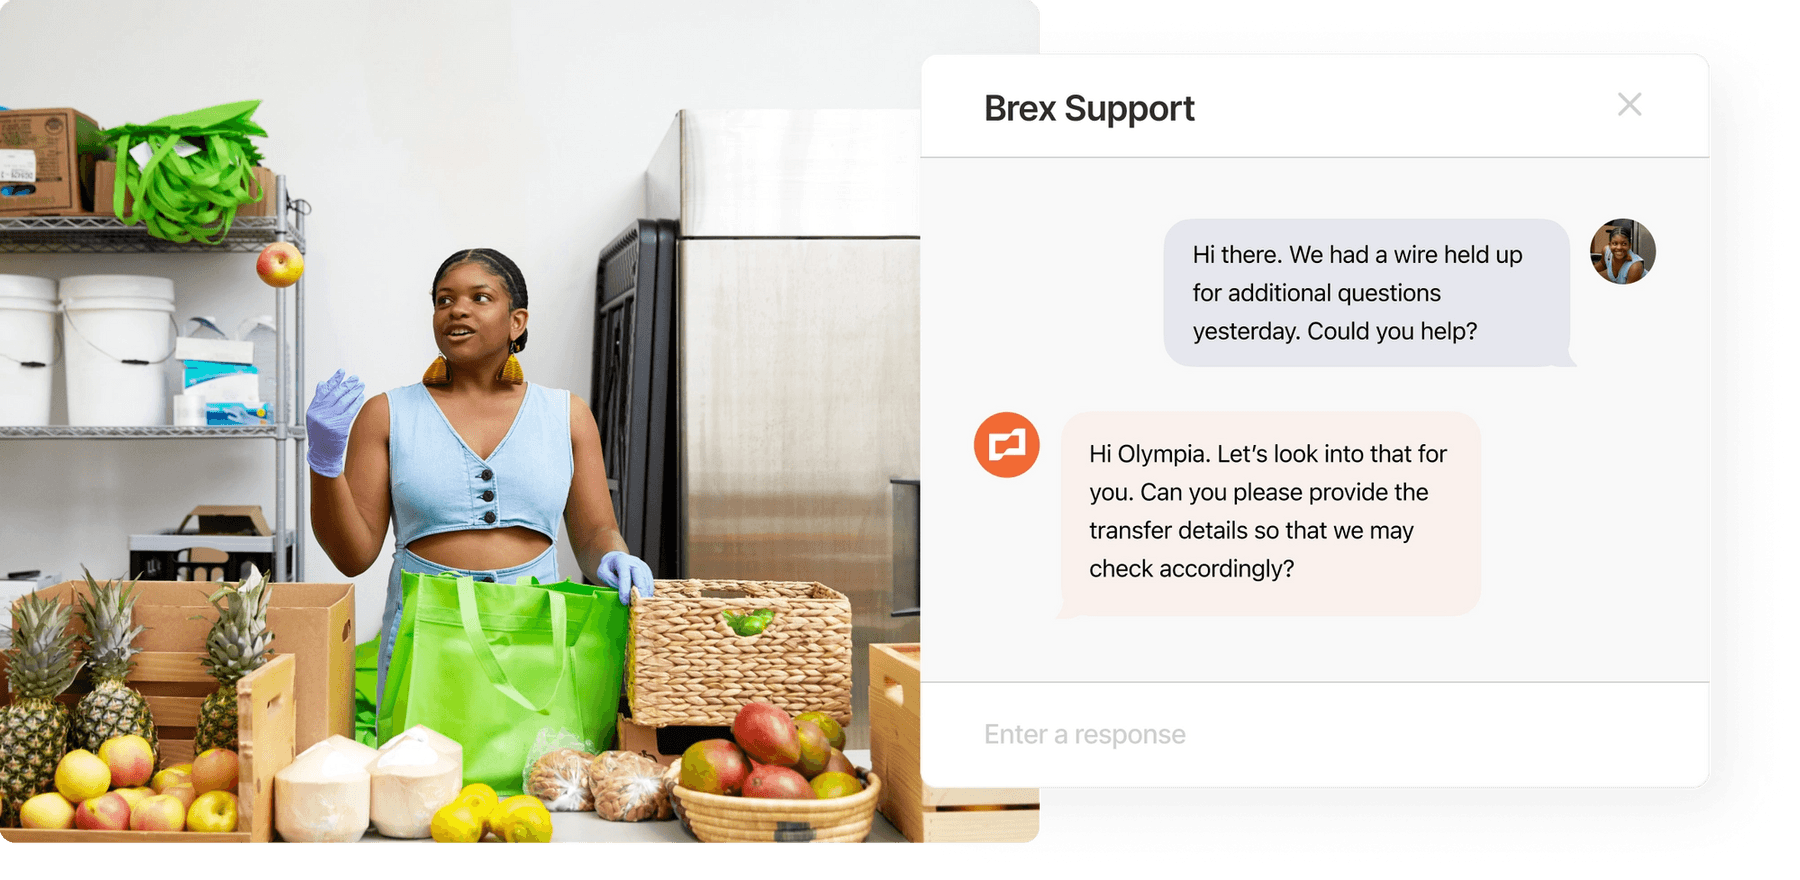 Chat with Brex Support